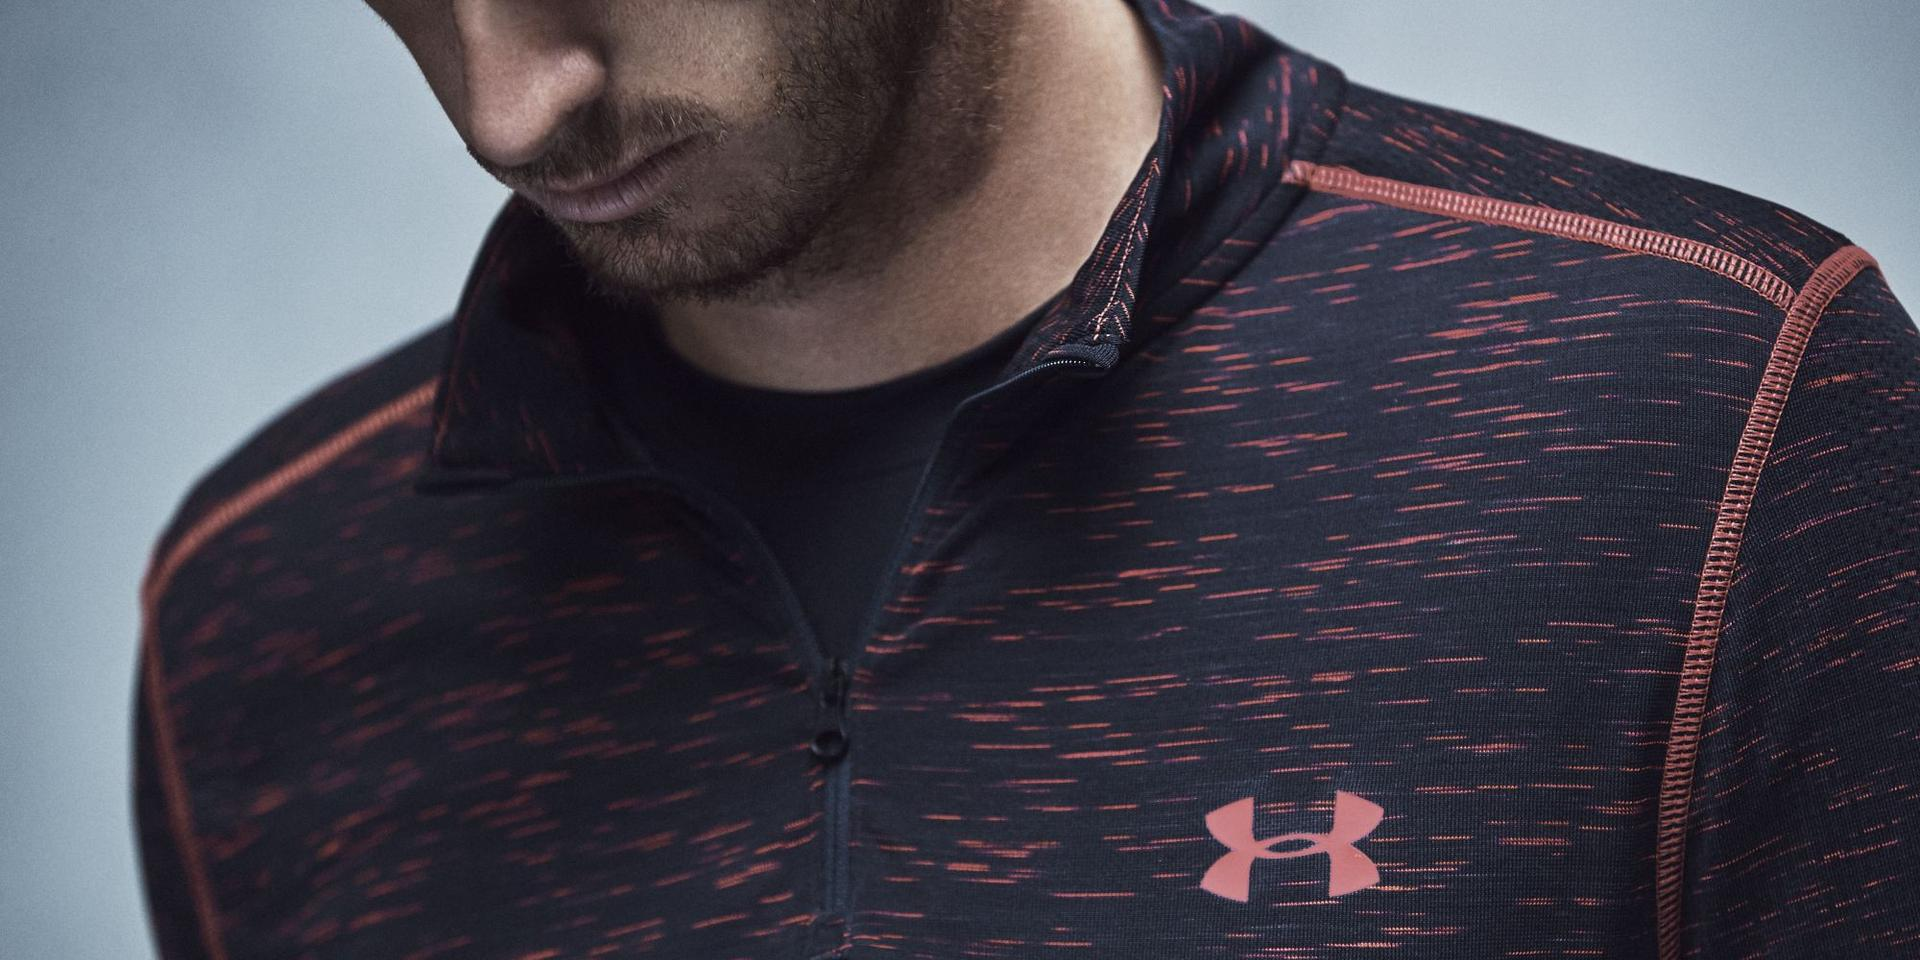 Sportler trägt ein Longsleeve mit Under Armour Threadborne Technologie